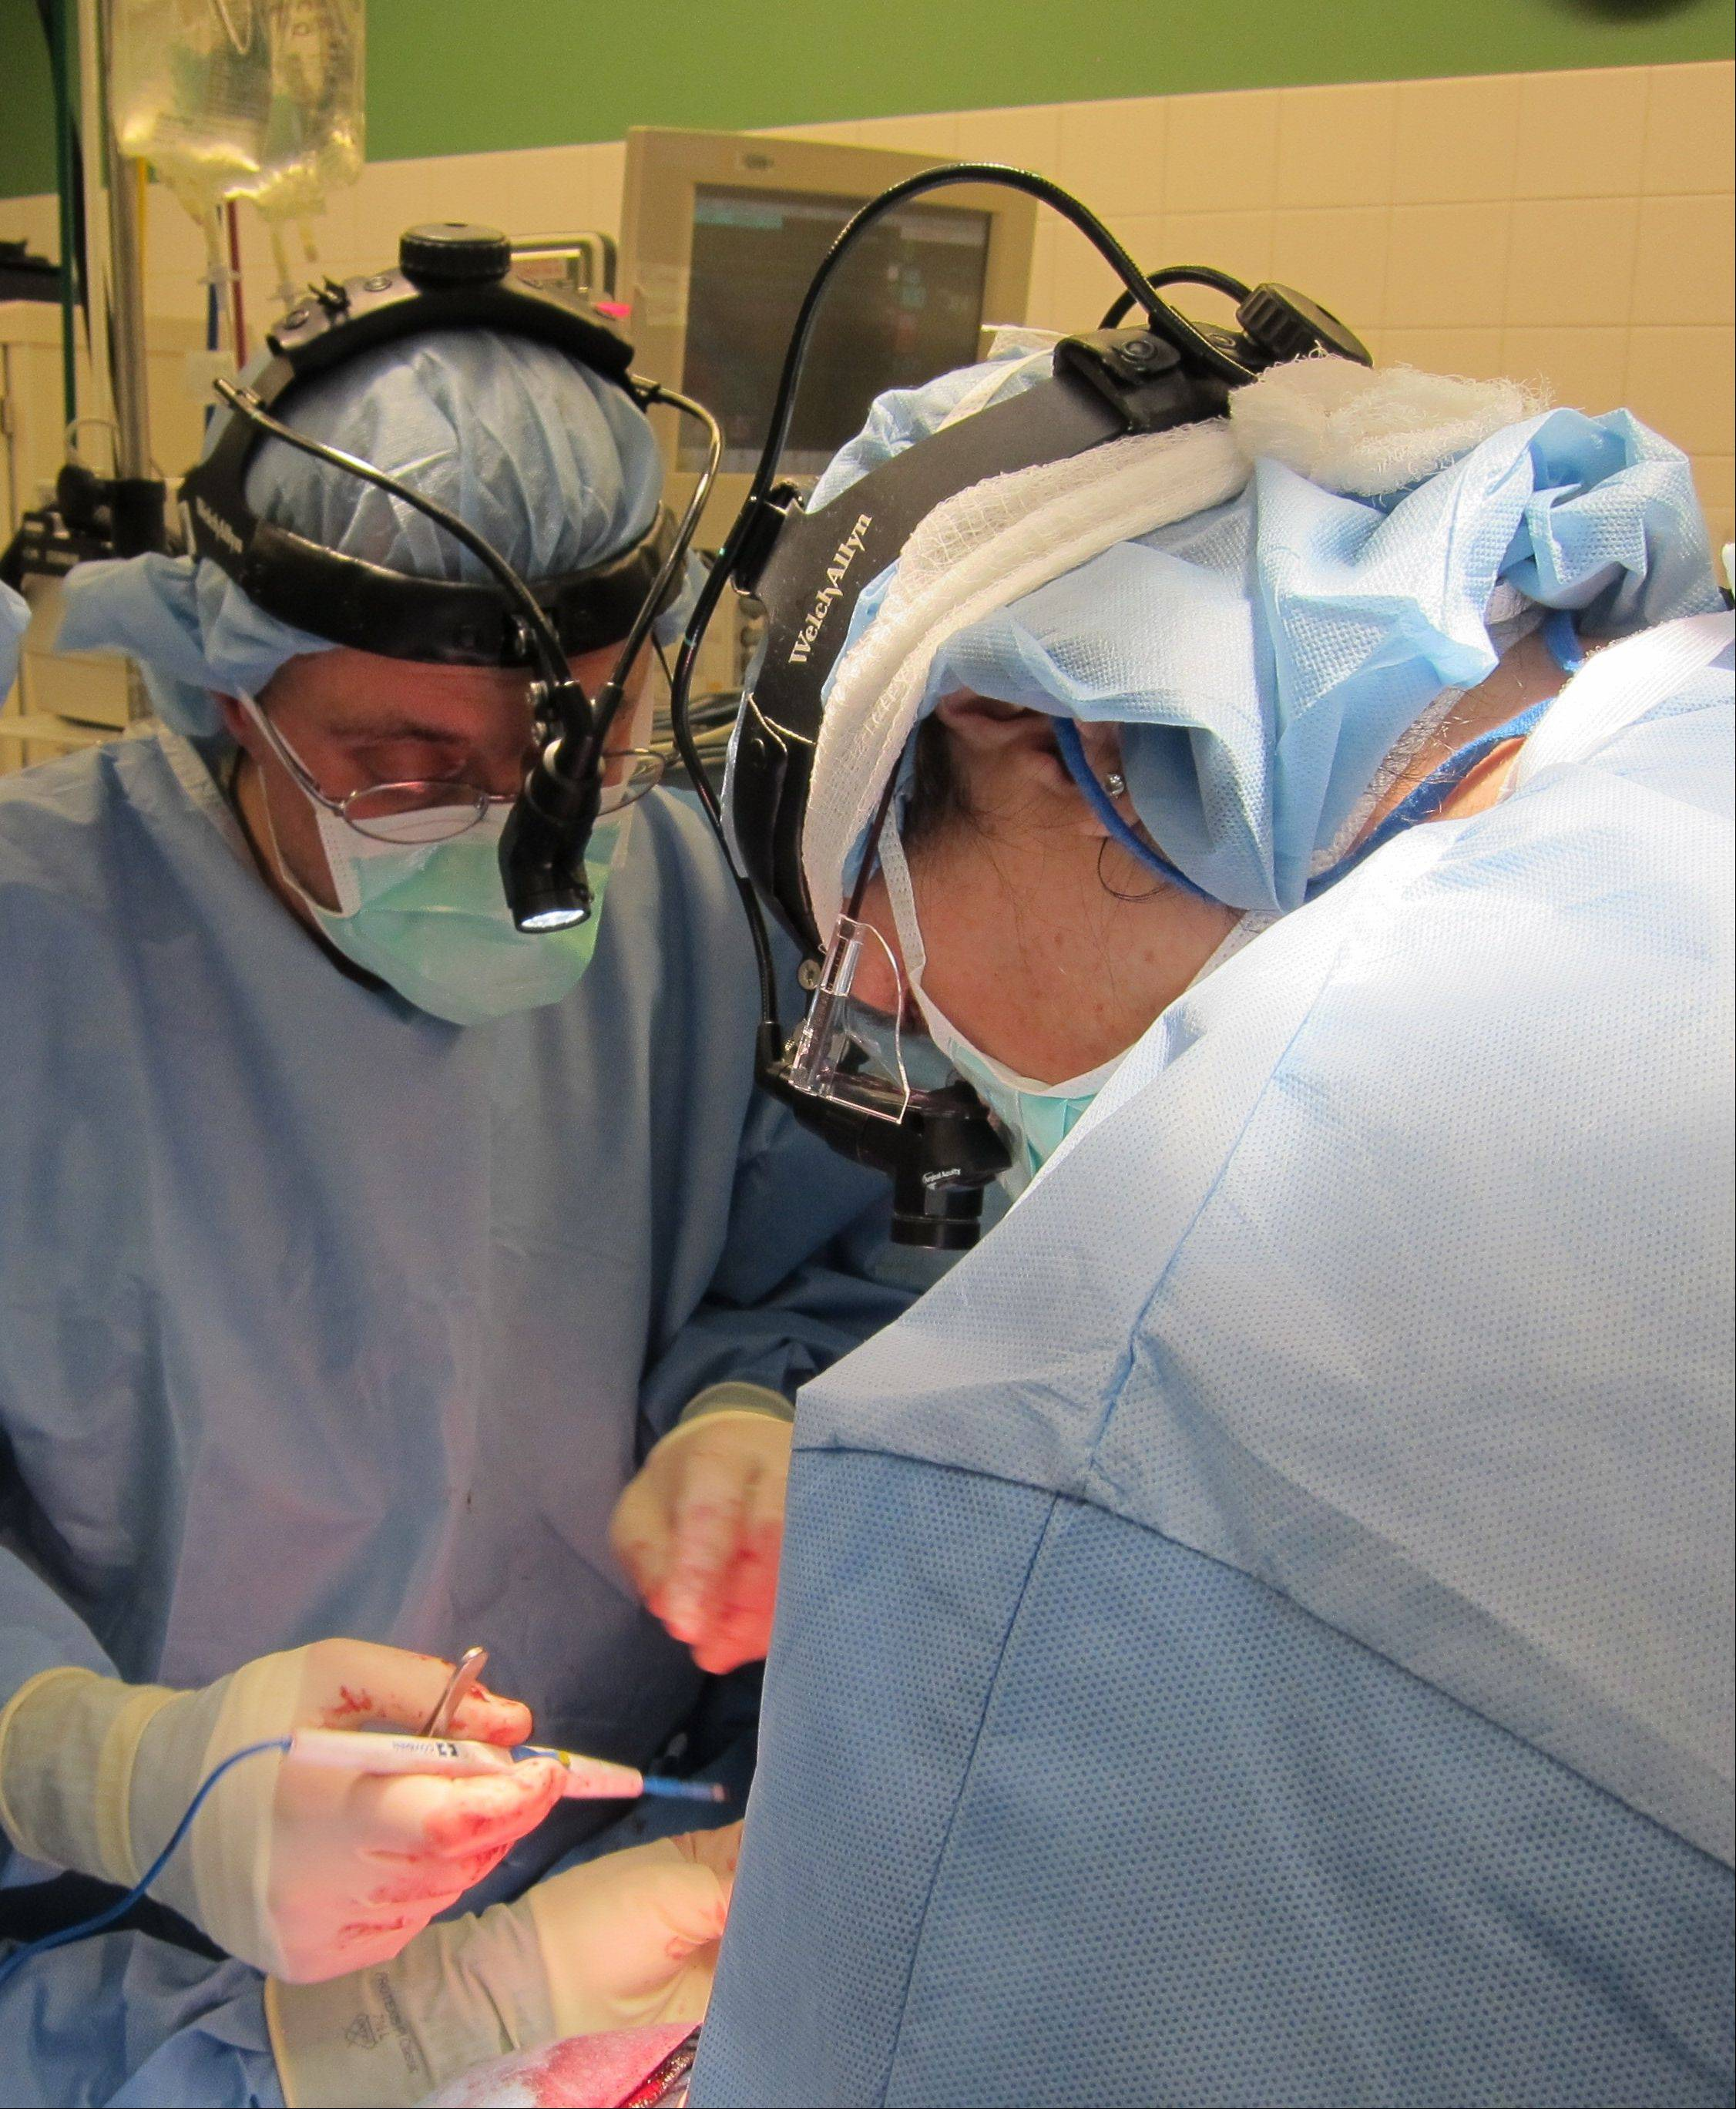 University of Chicago Medicine doctors Fuad Baroody, facing the camera, and Deborah Loeff, right, work to insert a tiny breathing tube down the throat of John Carlos Guzman during a potentially fatal high-tech surgery.